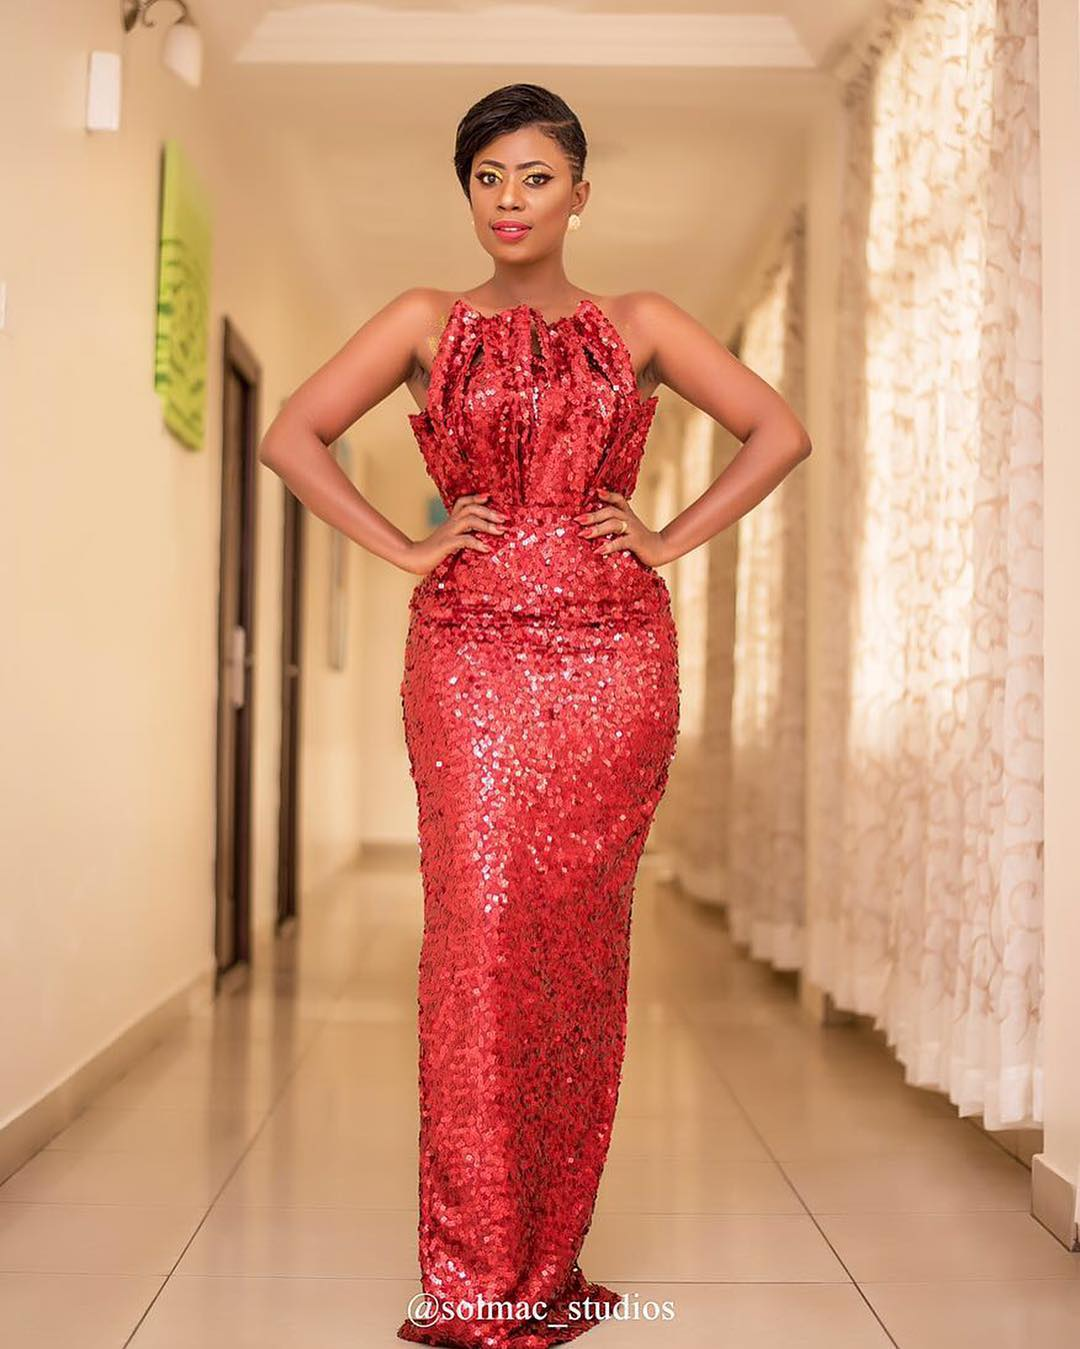 Selorm Galley-Fiawoo Just Blew Us Away With Her Glamorous Shimmering Gown -  FPN